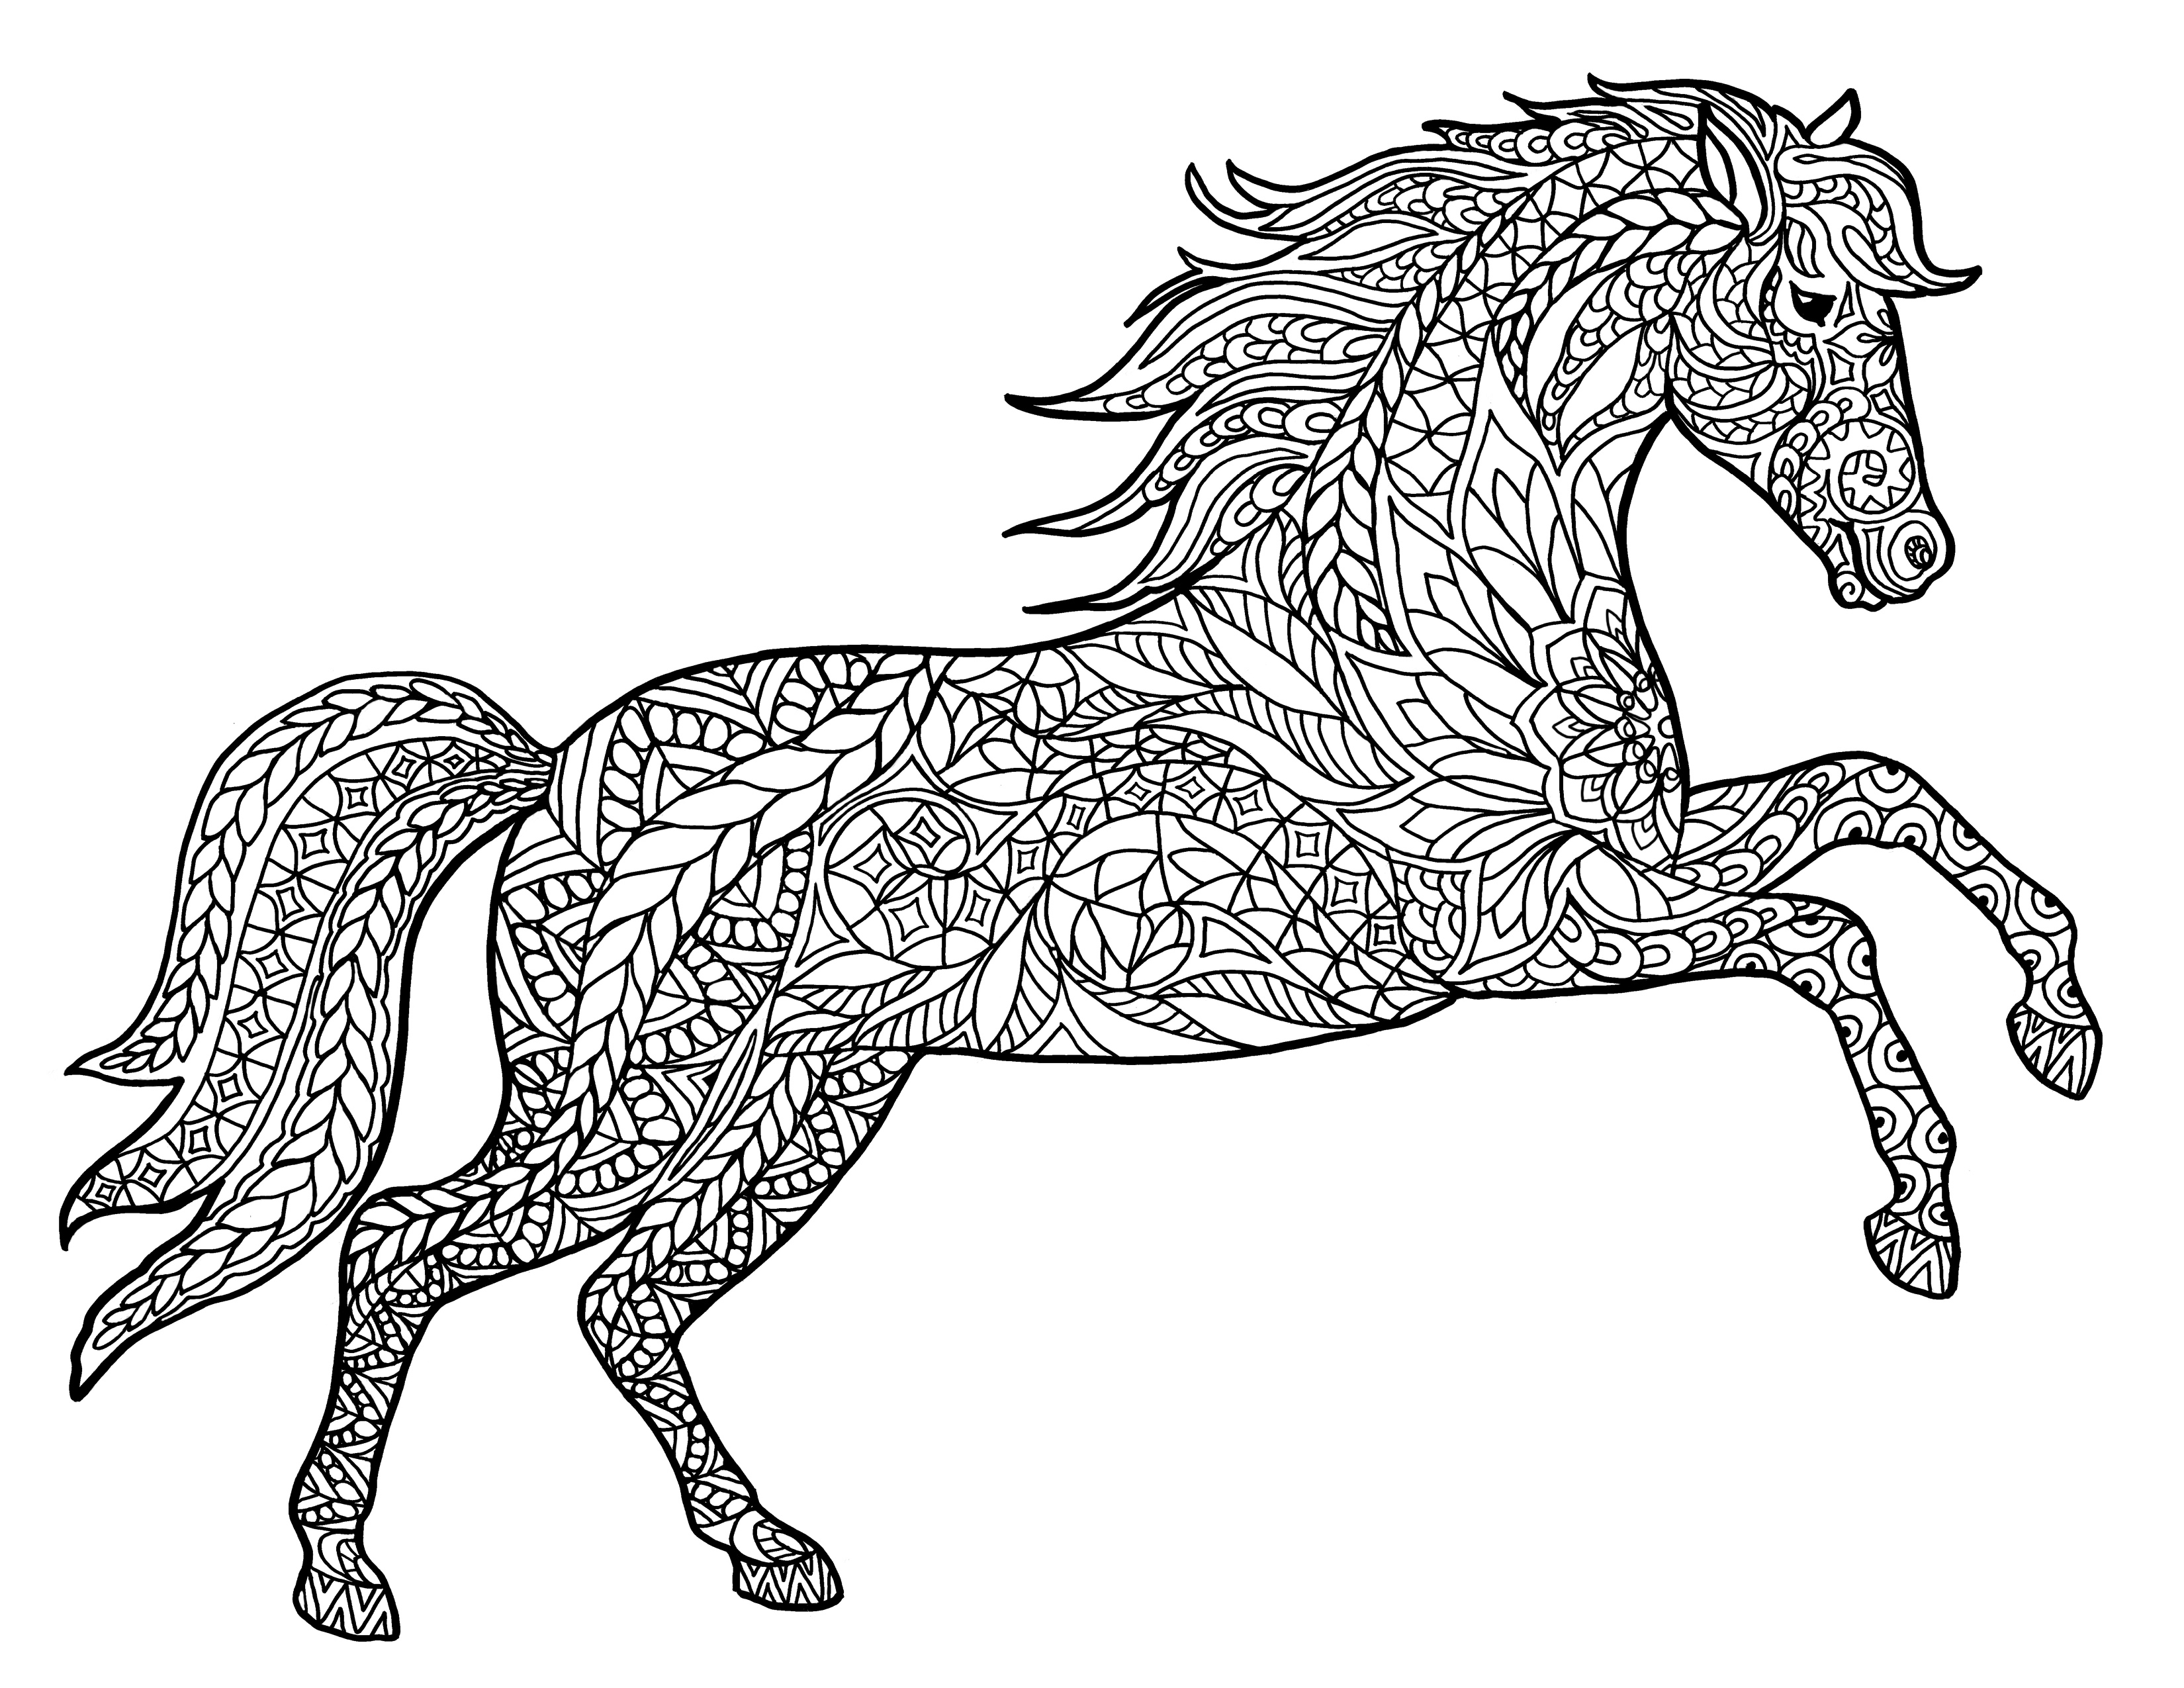 animal coloring pages free 30 free printable geometric animal coloring pages the pages animal free coloring